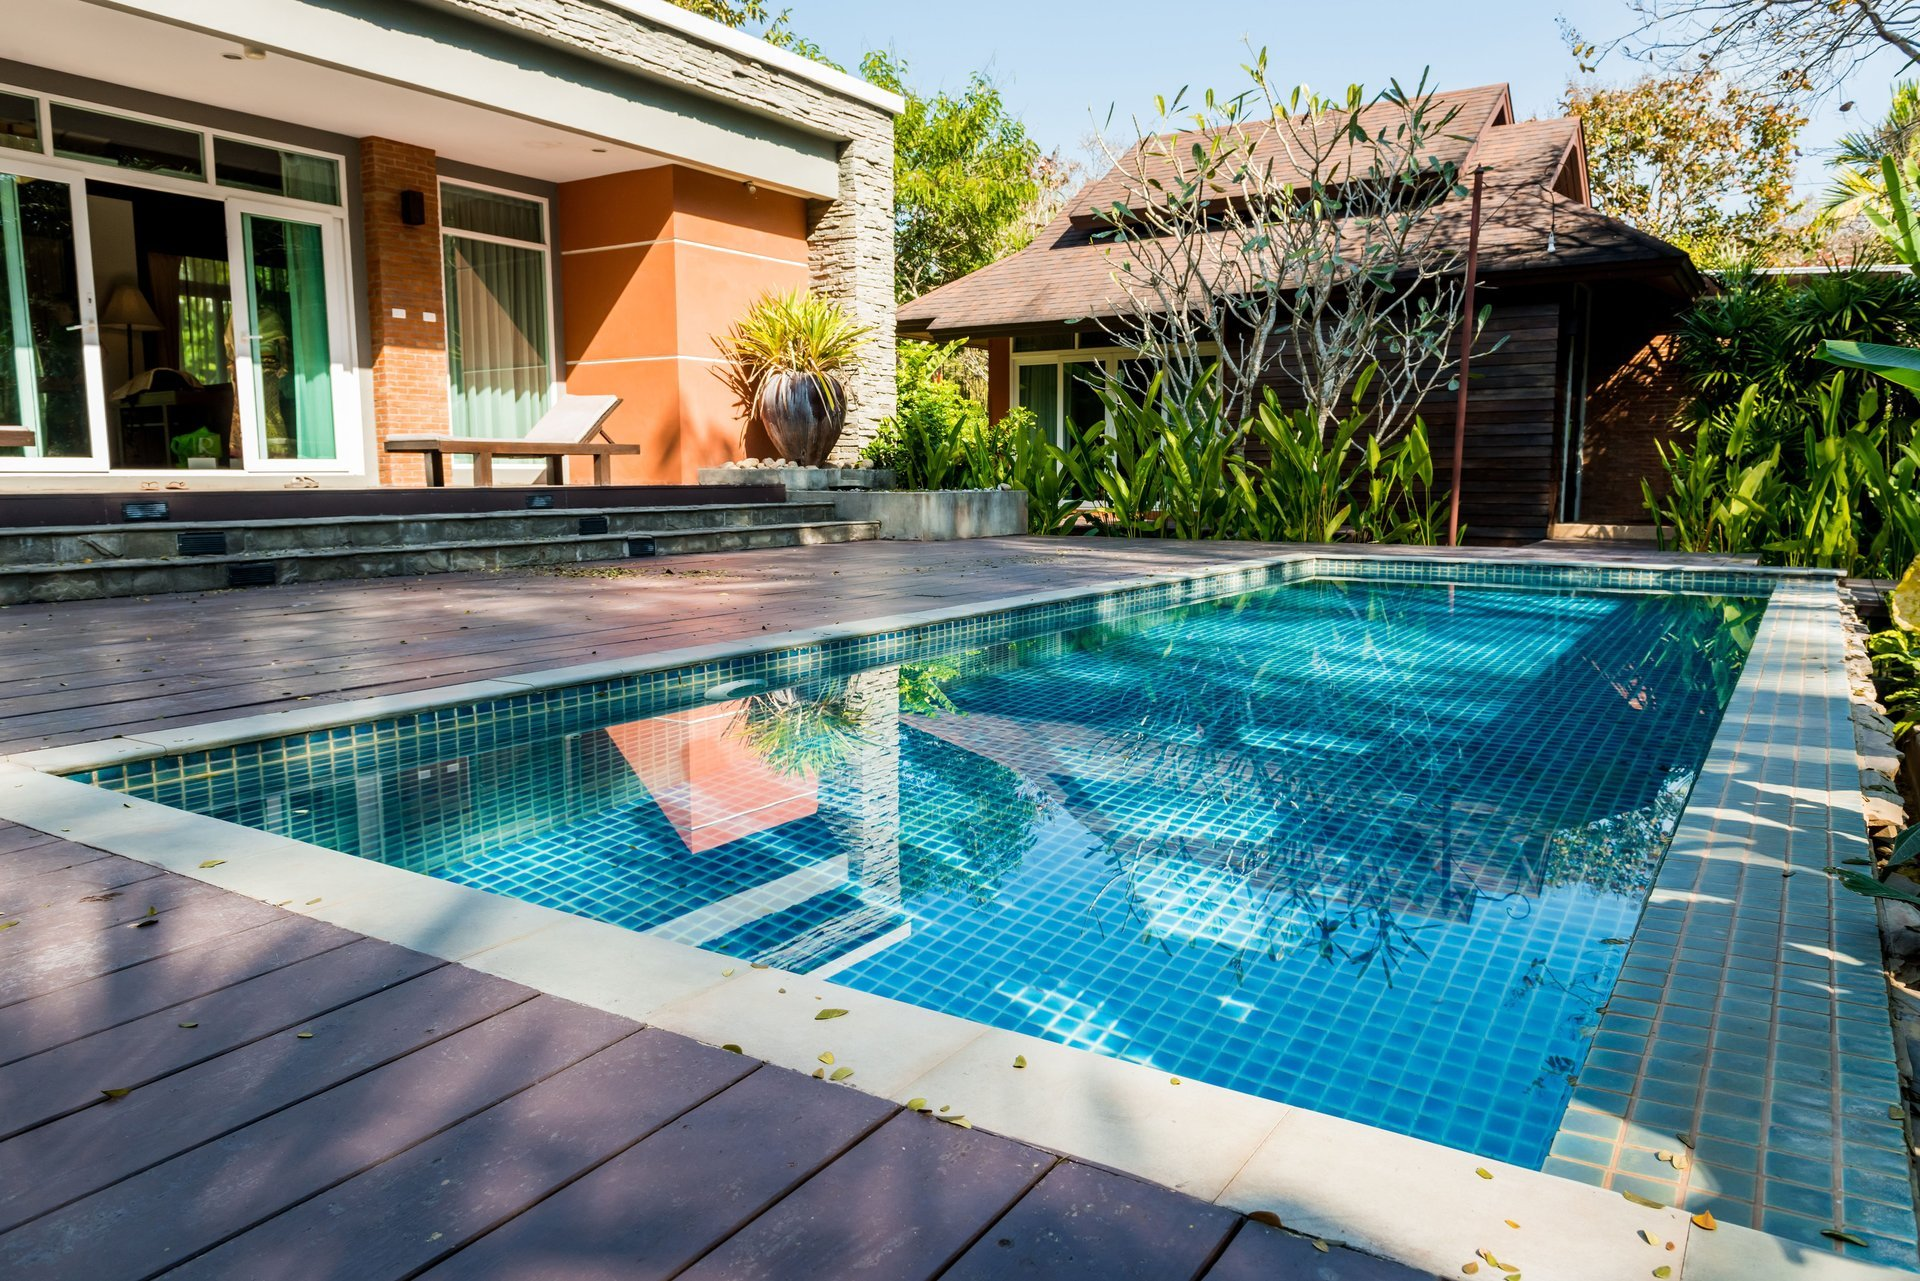 Pool doctors swimming pool service decatur al - Swimming pool maintenance services ...